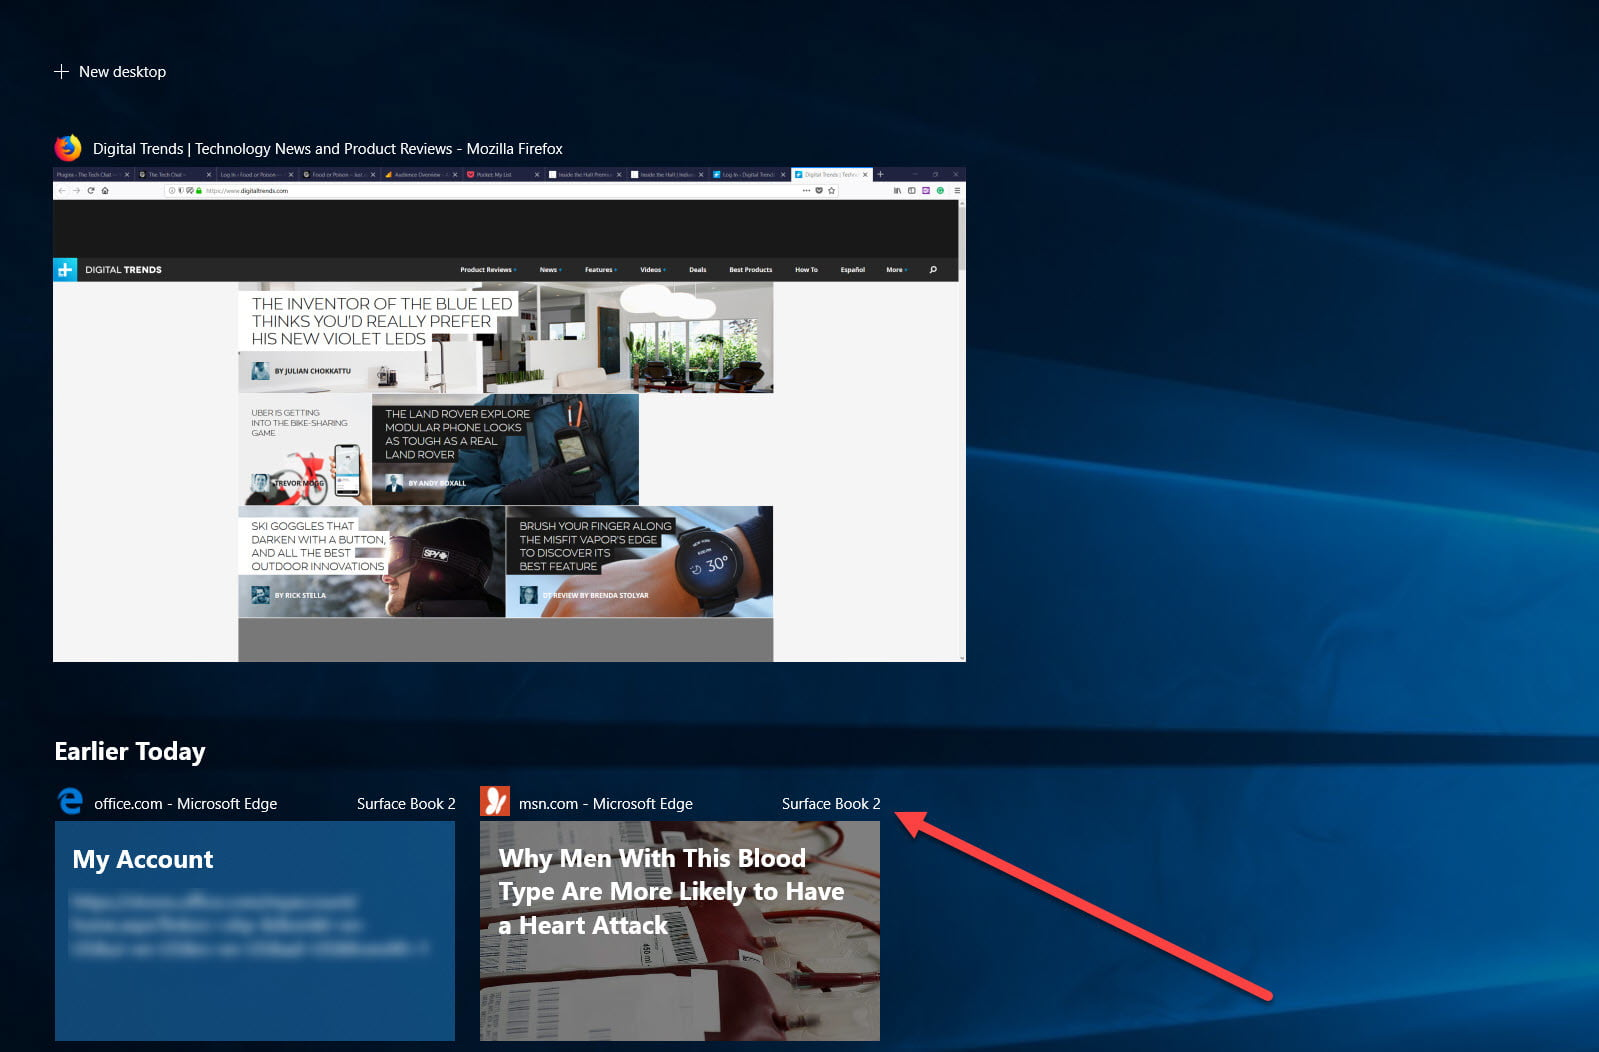 How to Use Windows Timeline | Digital Trends